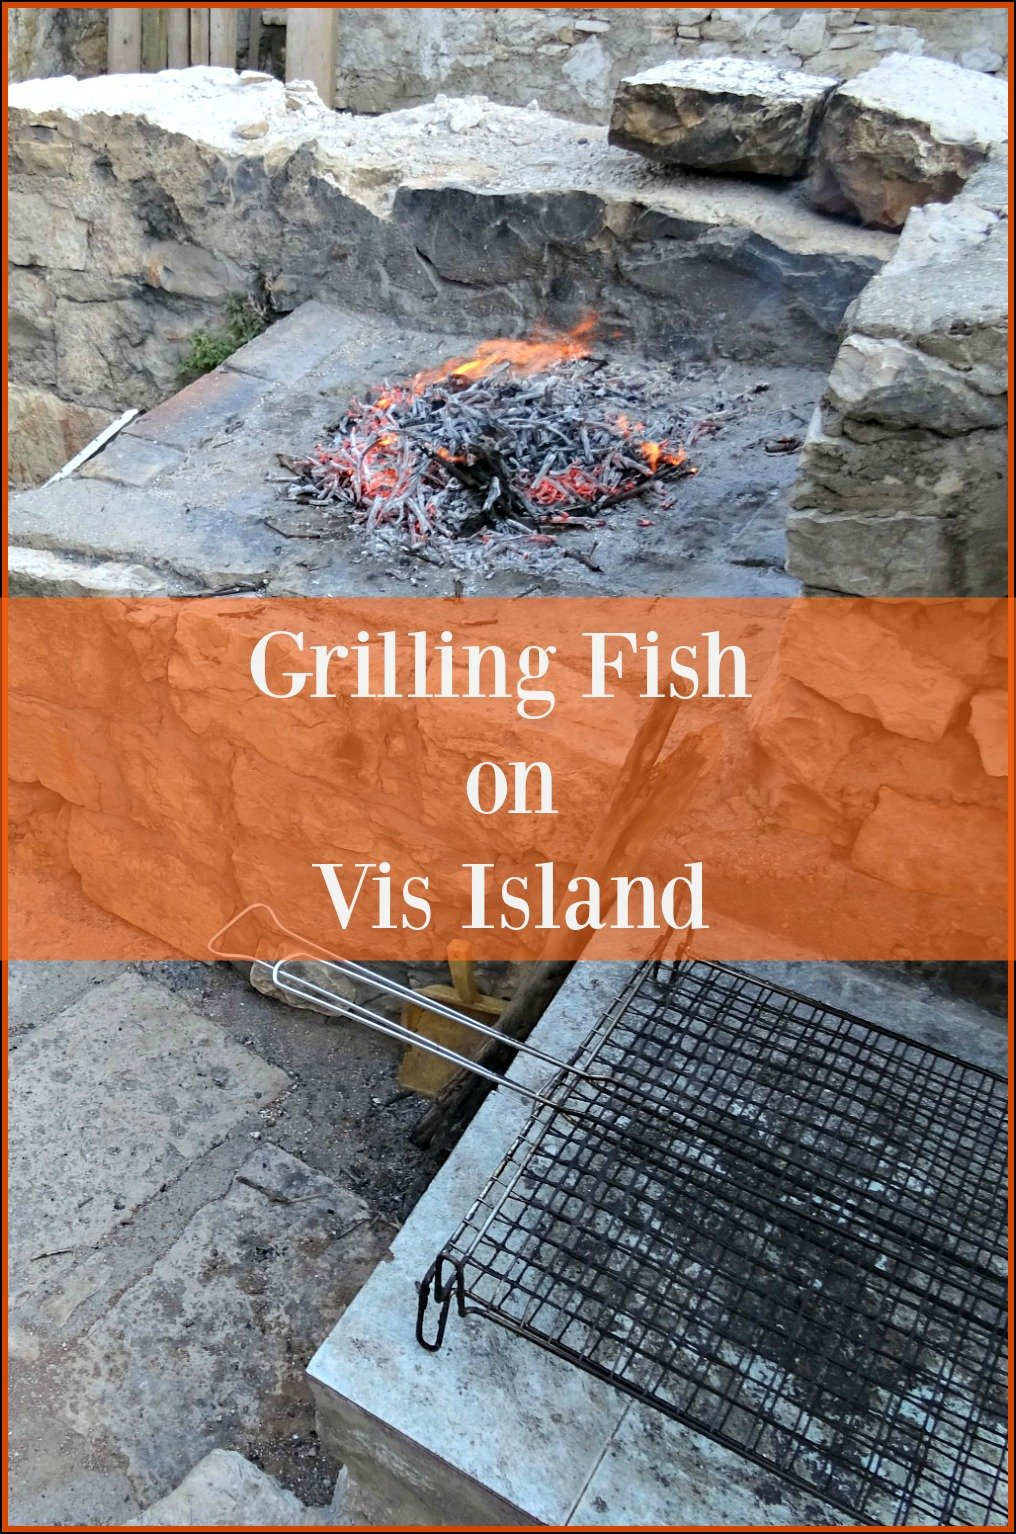 Grilling Fish on Vis Island, Croatia